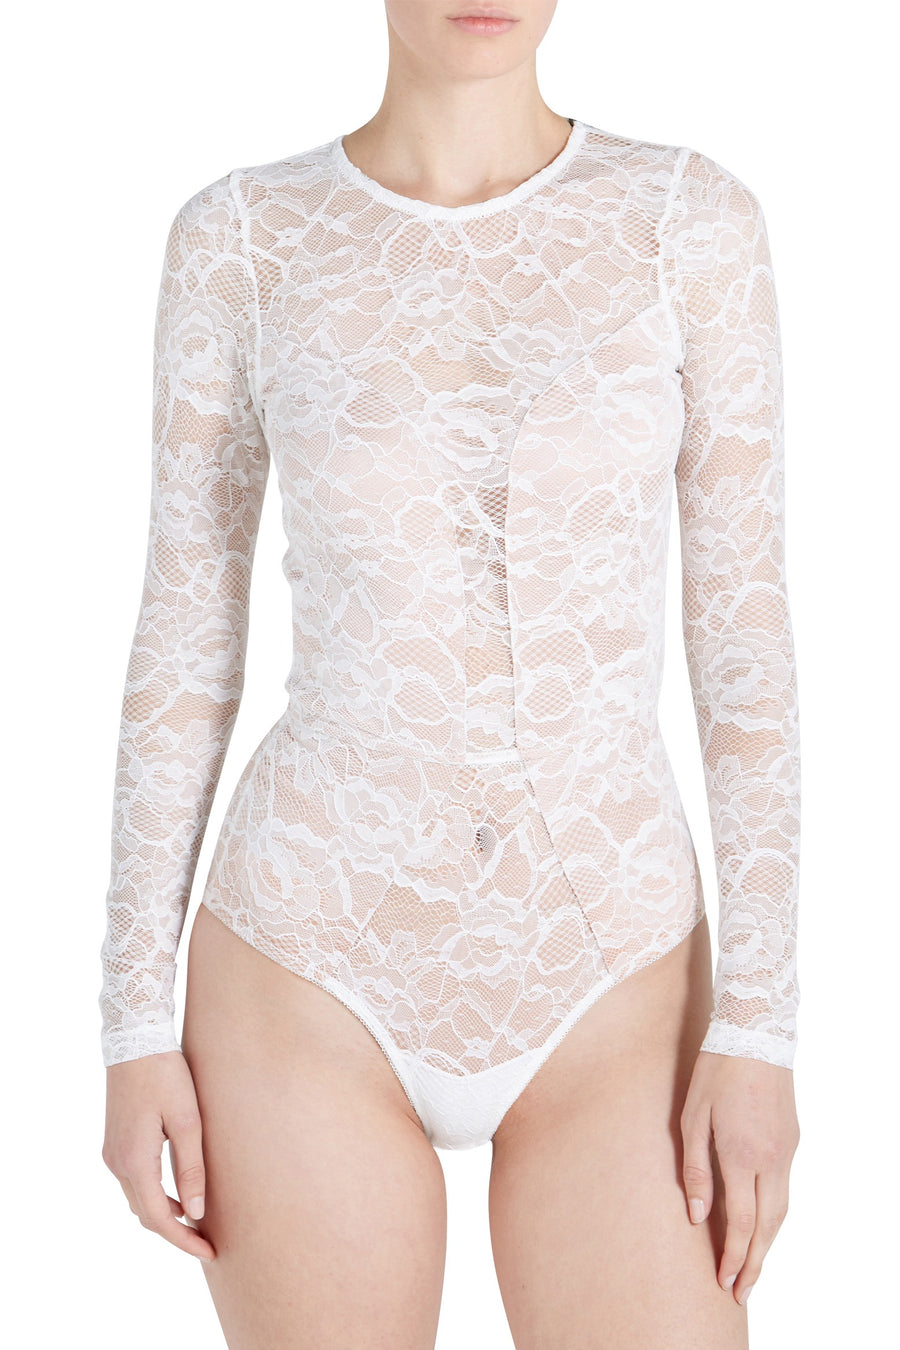 CHAT NOIR LACE LS BDYSUIT